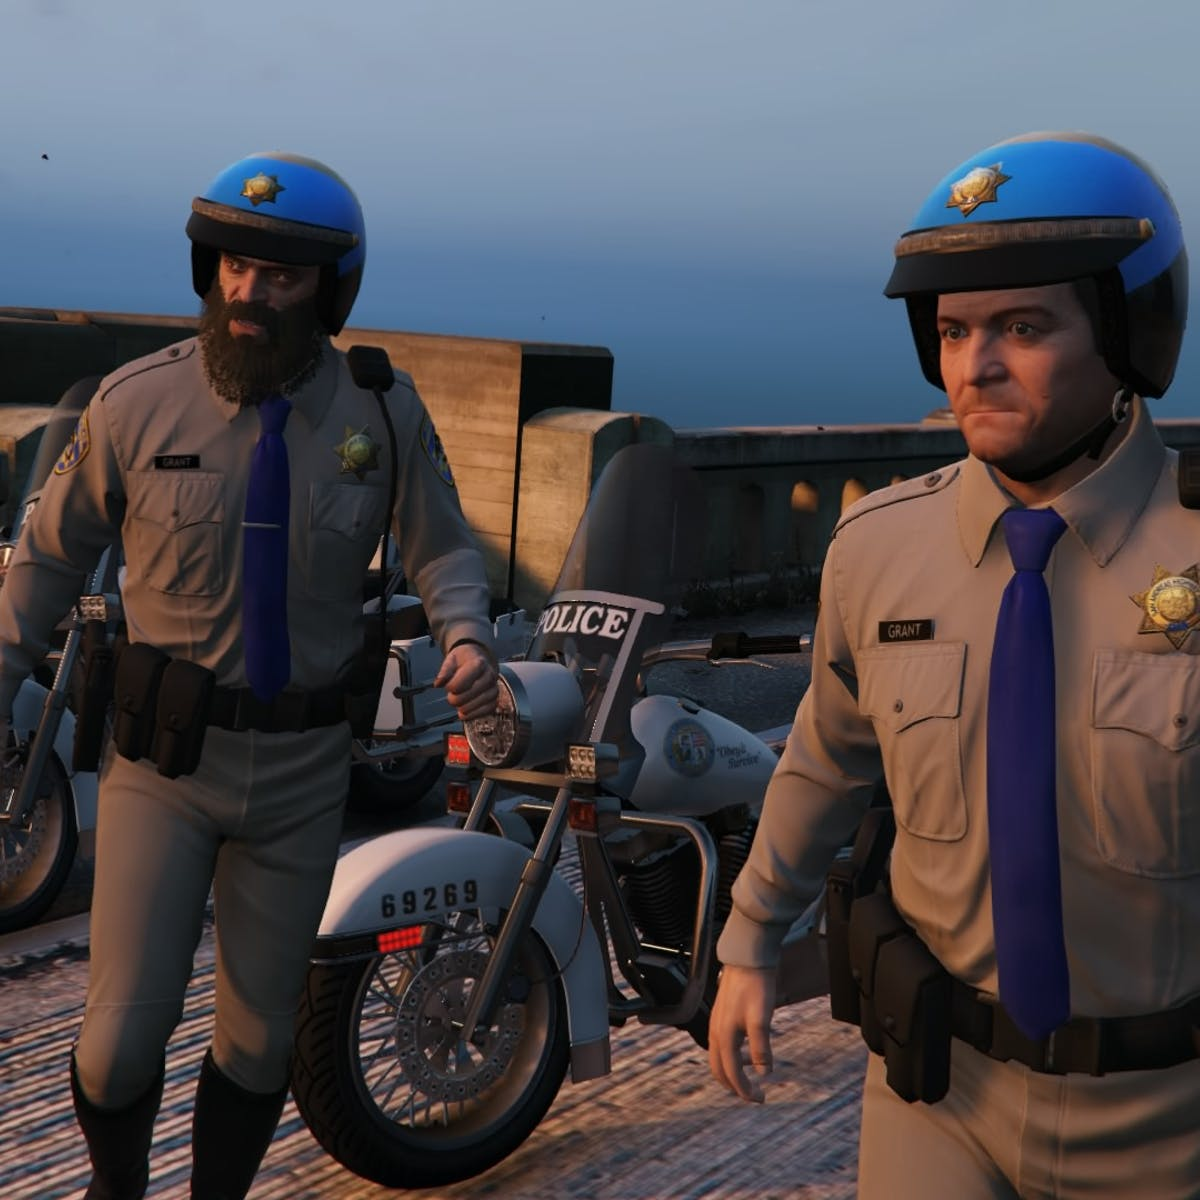 Grand Theft Auto doesn't cause crime, but poverty and alienation will